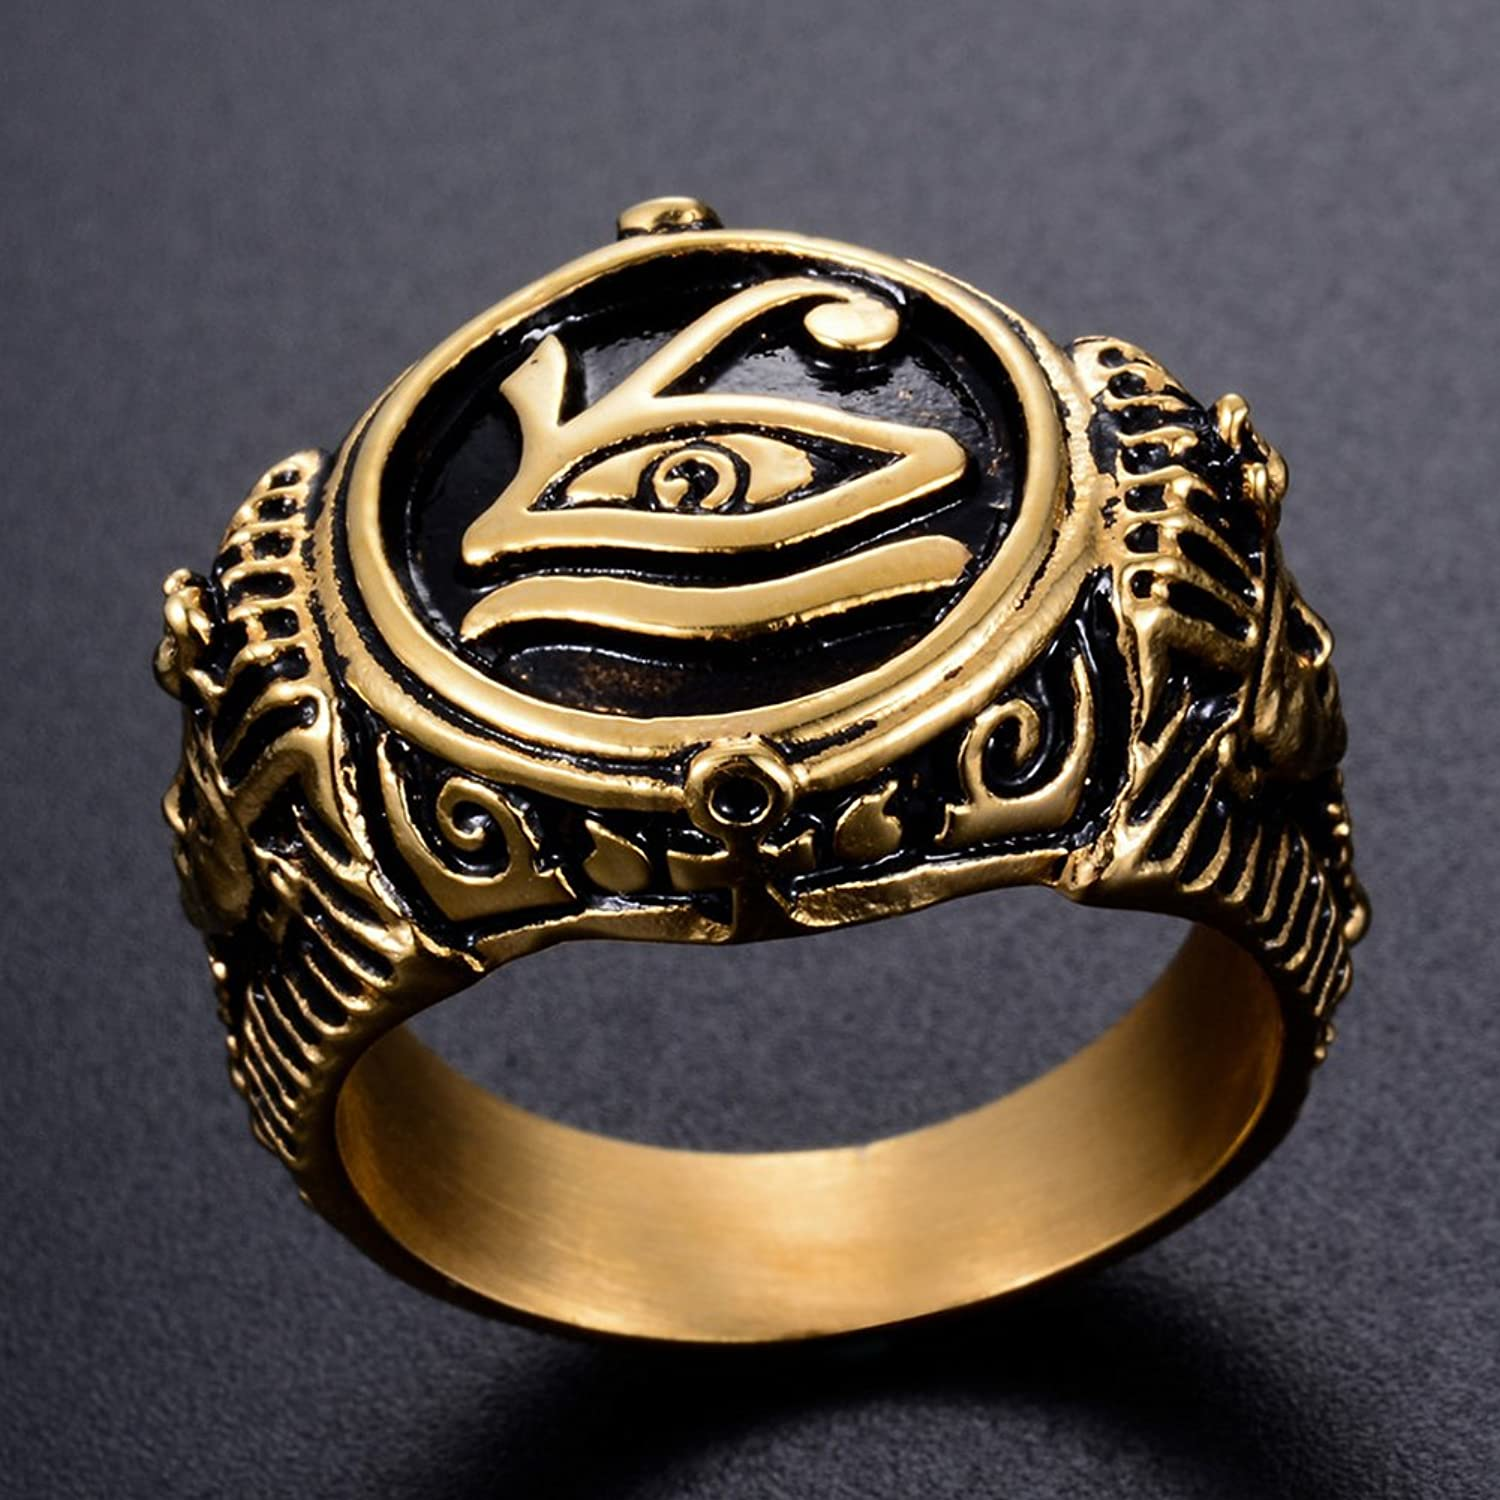 lovely bulzi of sors jewellery collectables most awesome antiques we fort amp egyptian tr tresors silicone fit sell ring massaging wedding rings